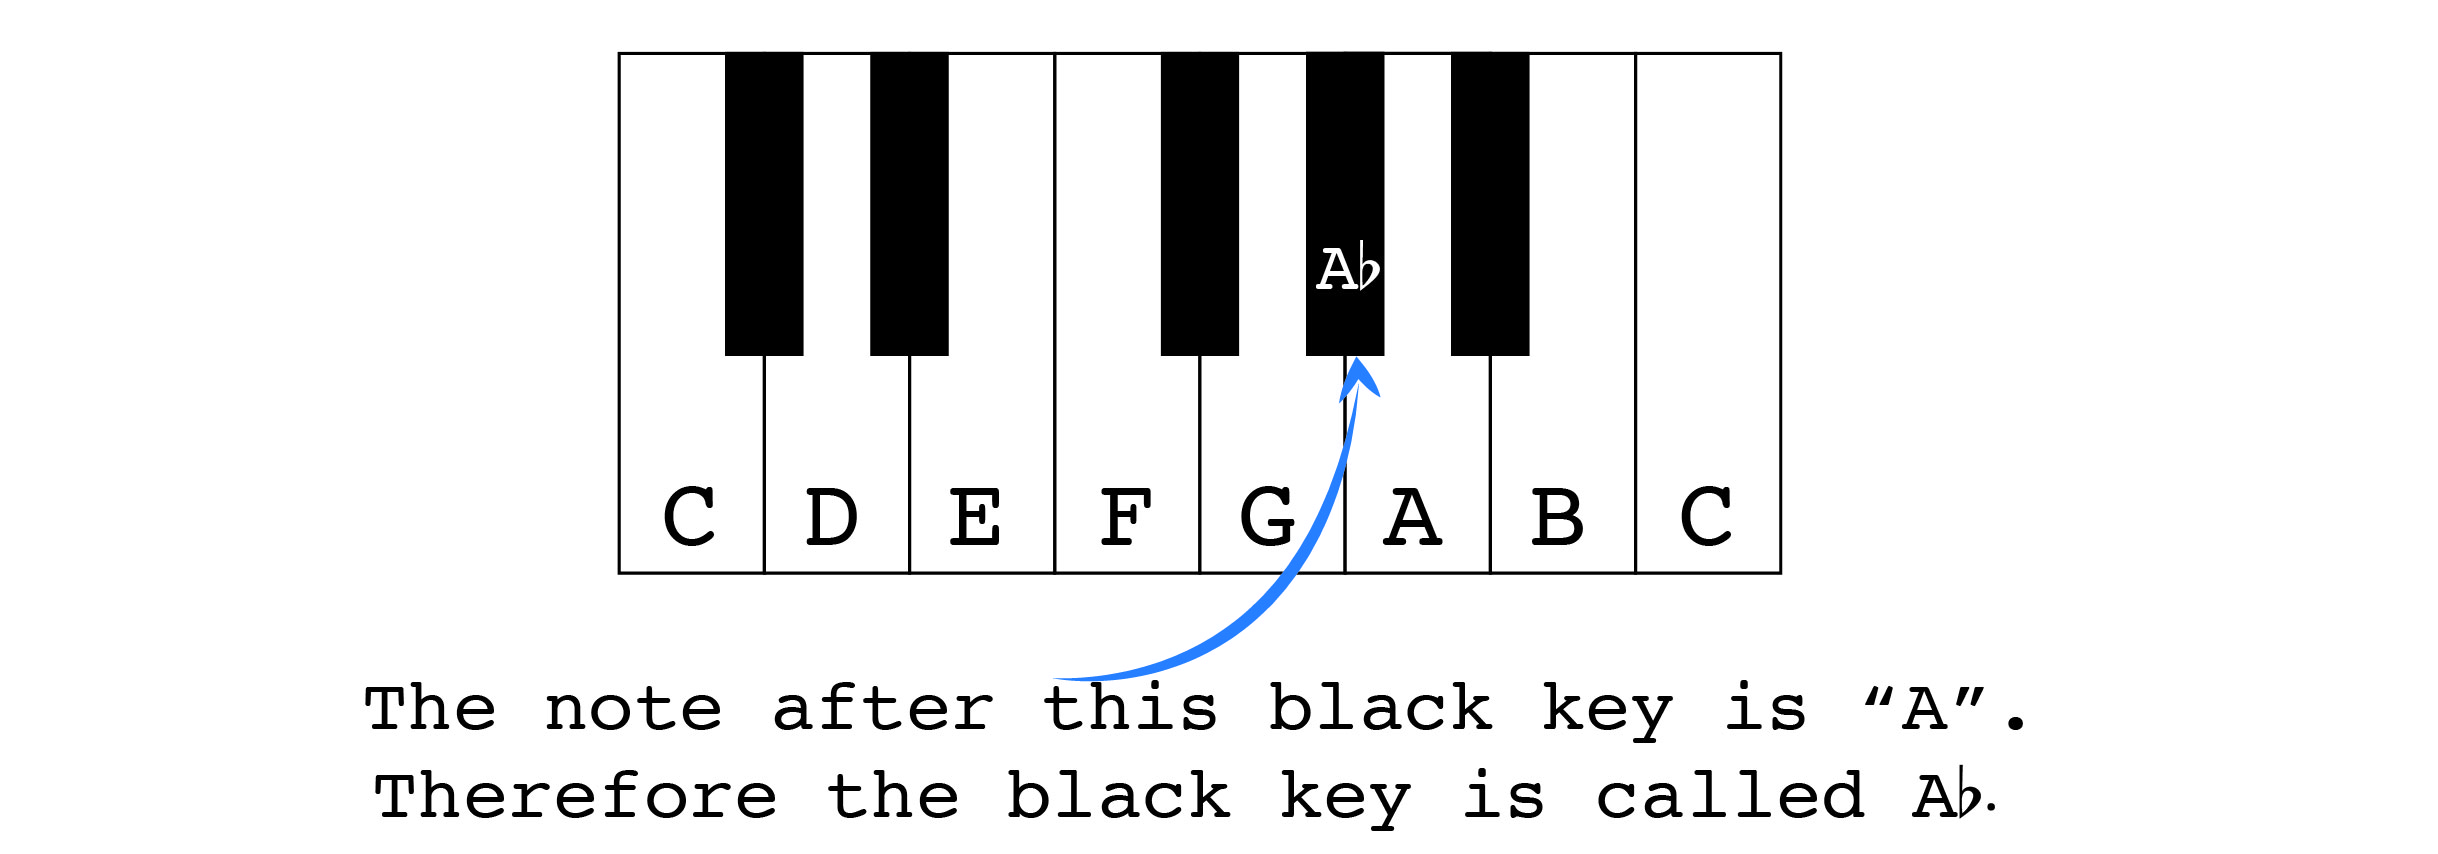 Musics dna the chromatic scale zac pugh guitar heres the second way the letter of the white key after it and then add the flat symbol for example before the white a key comes the black a flat key biocorpaavc